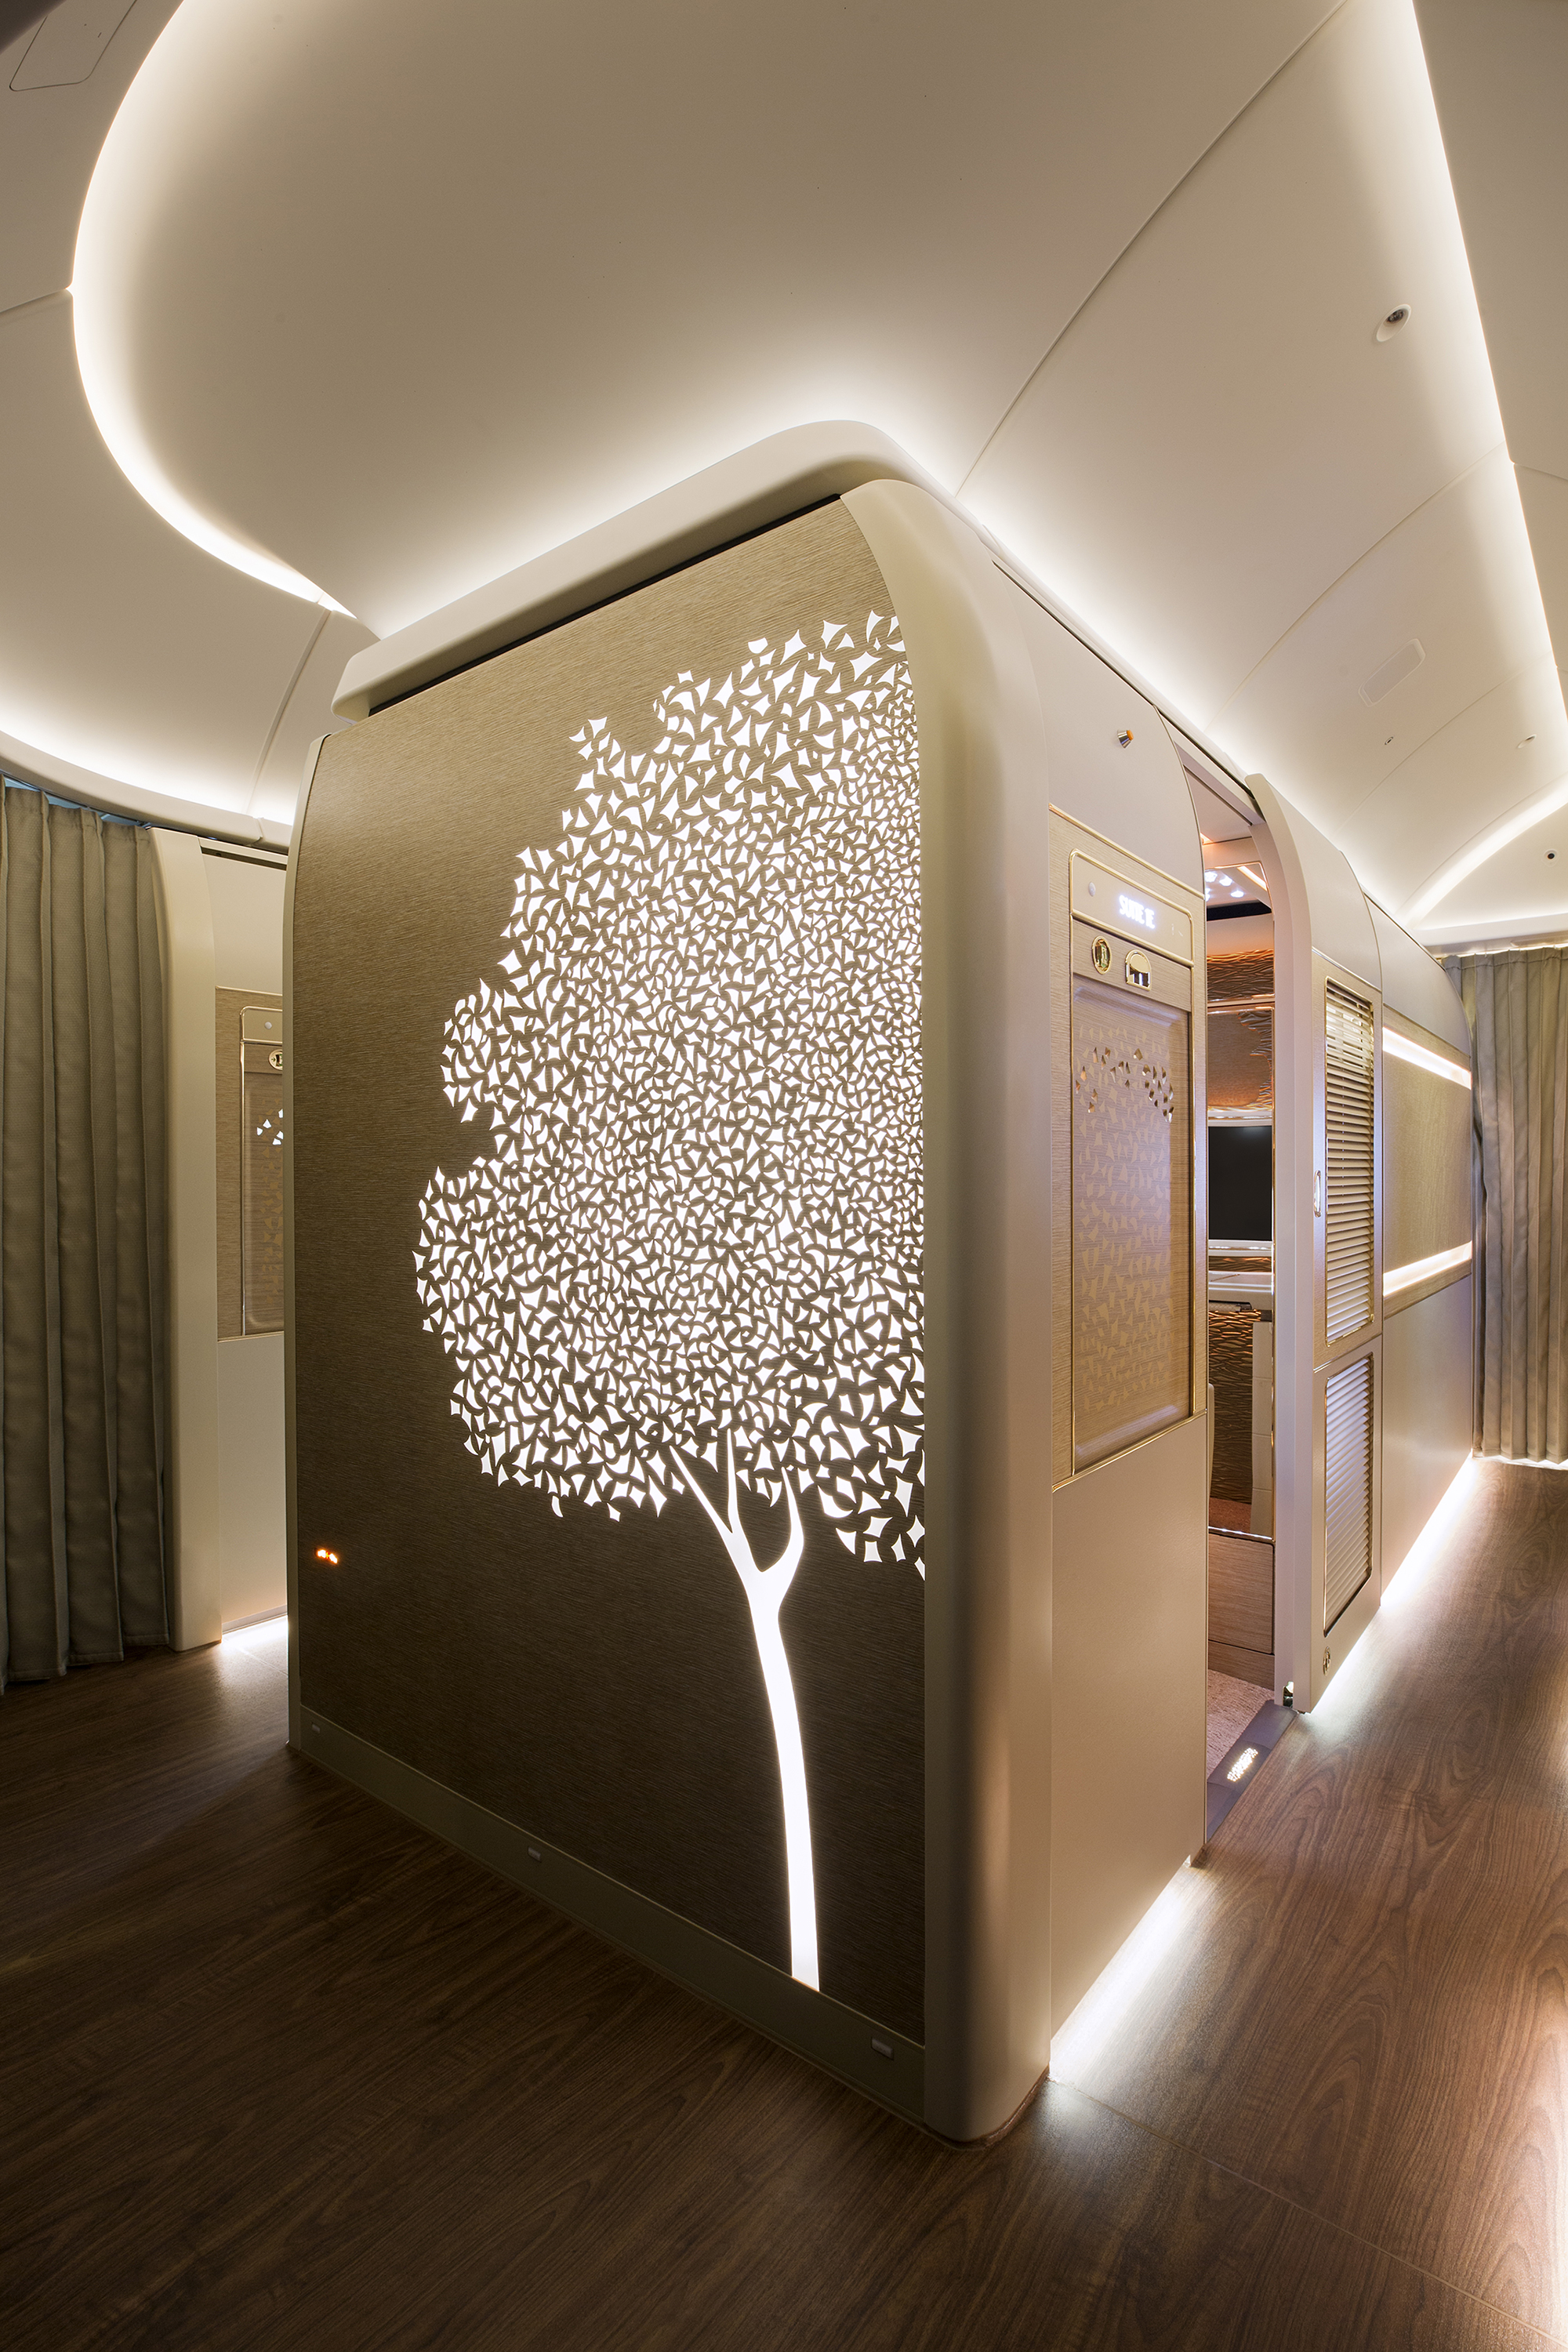 ghaf-tree-motif-in-first-class.jpg